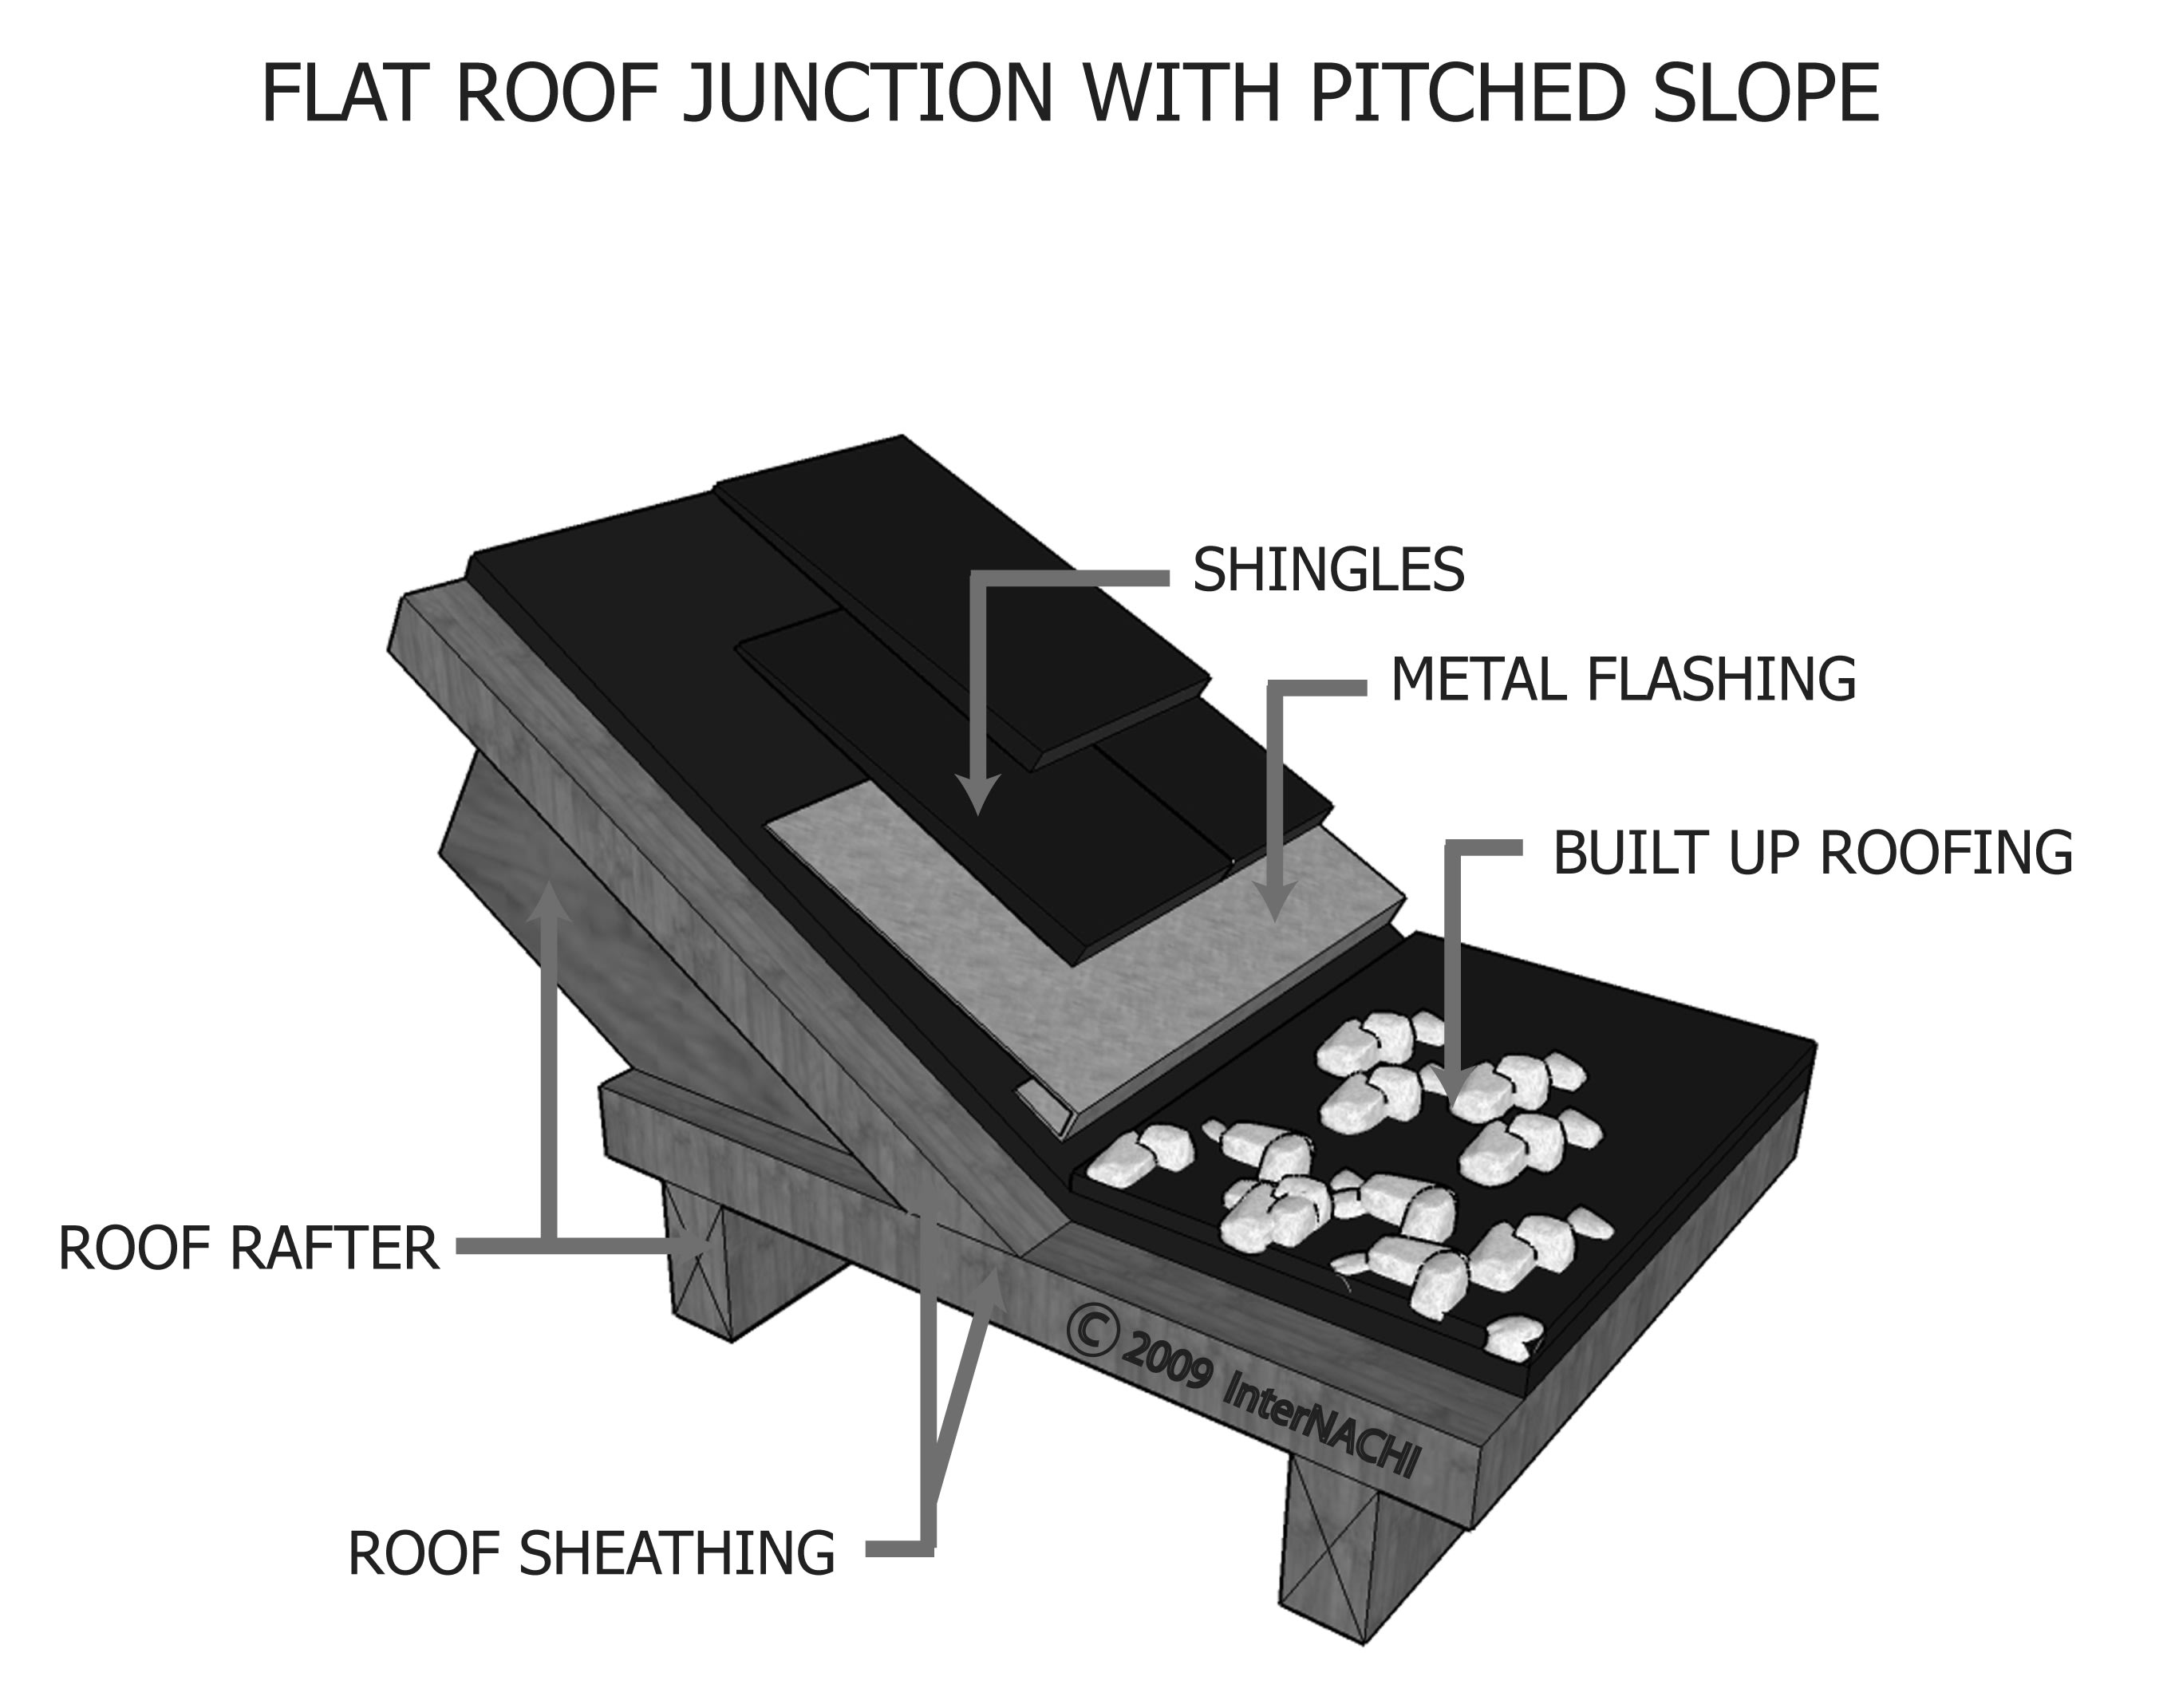 Flat roof junction with pitched roof.